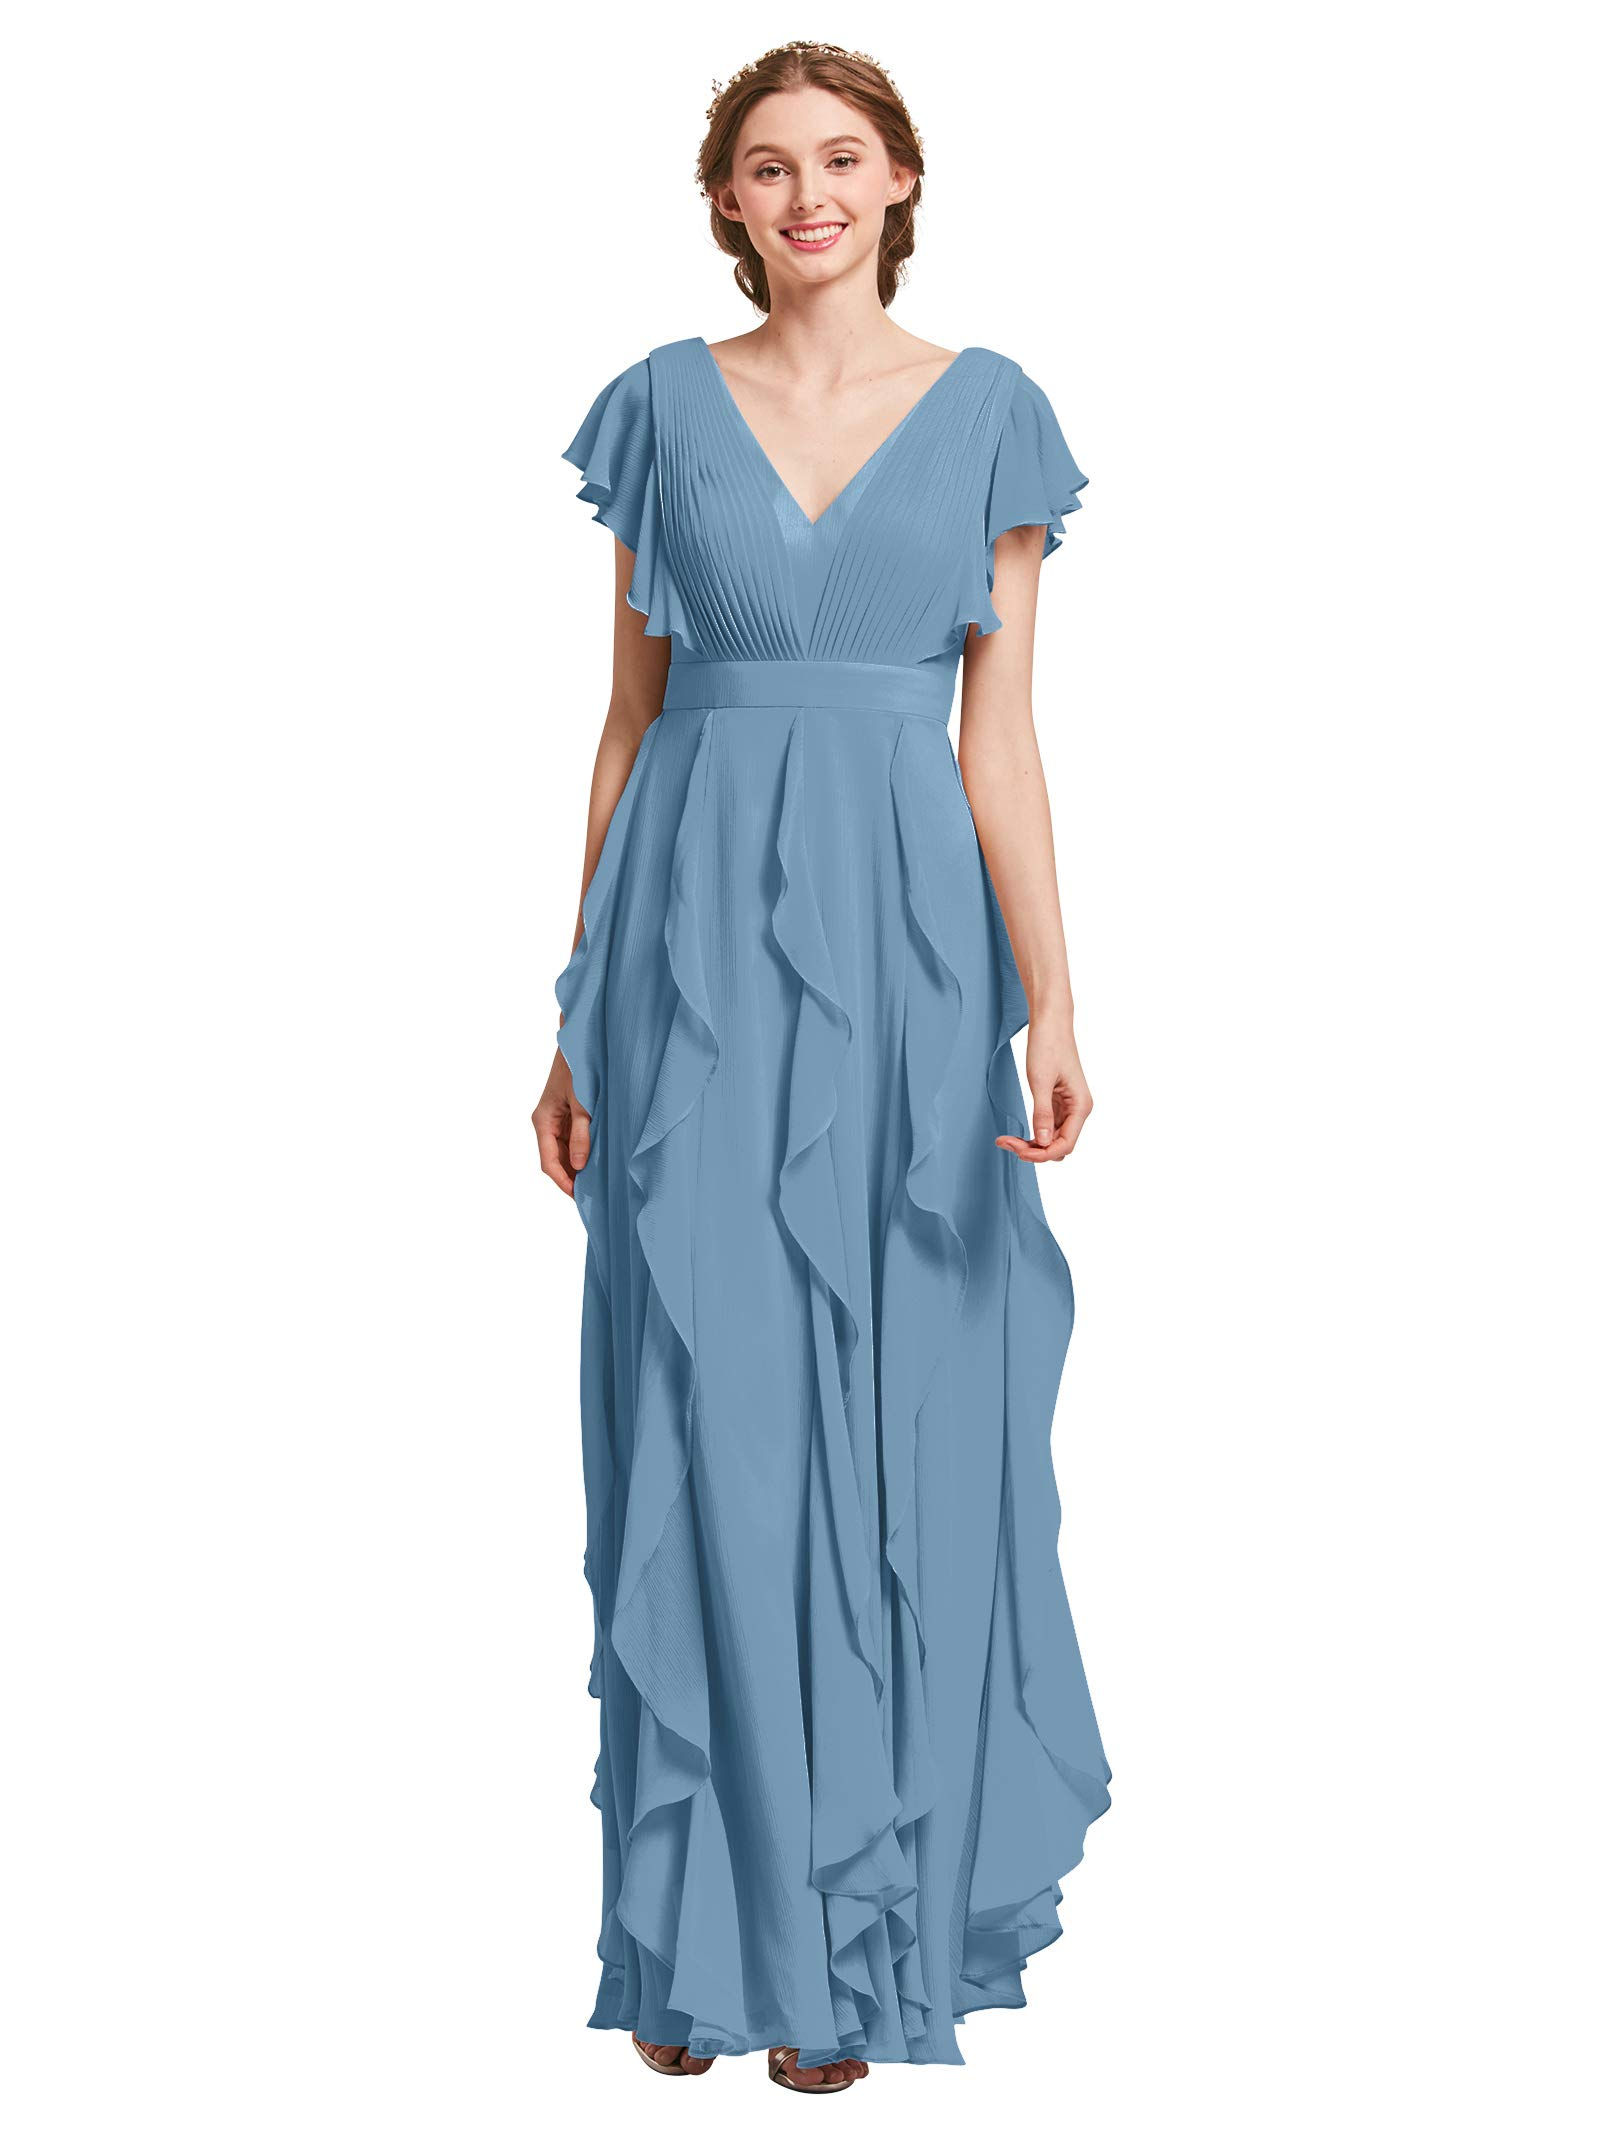 af3704de1fa1c AW Bridal Long Bridesmaid Dresses for Women Formal Dresses with Sleeves  Chiffon Gowns and Evening Dresses, Dusty Blue, US6